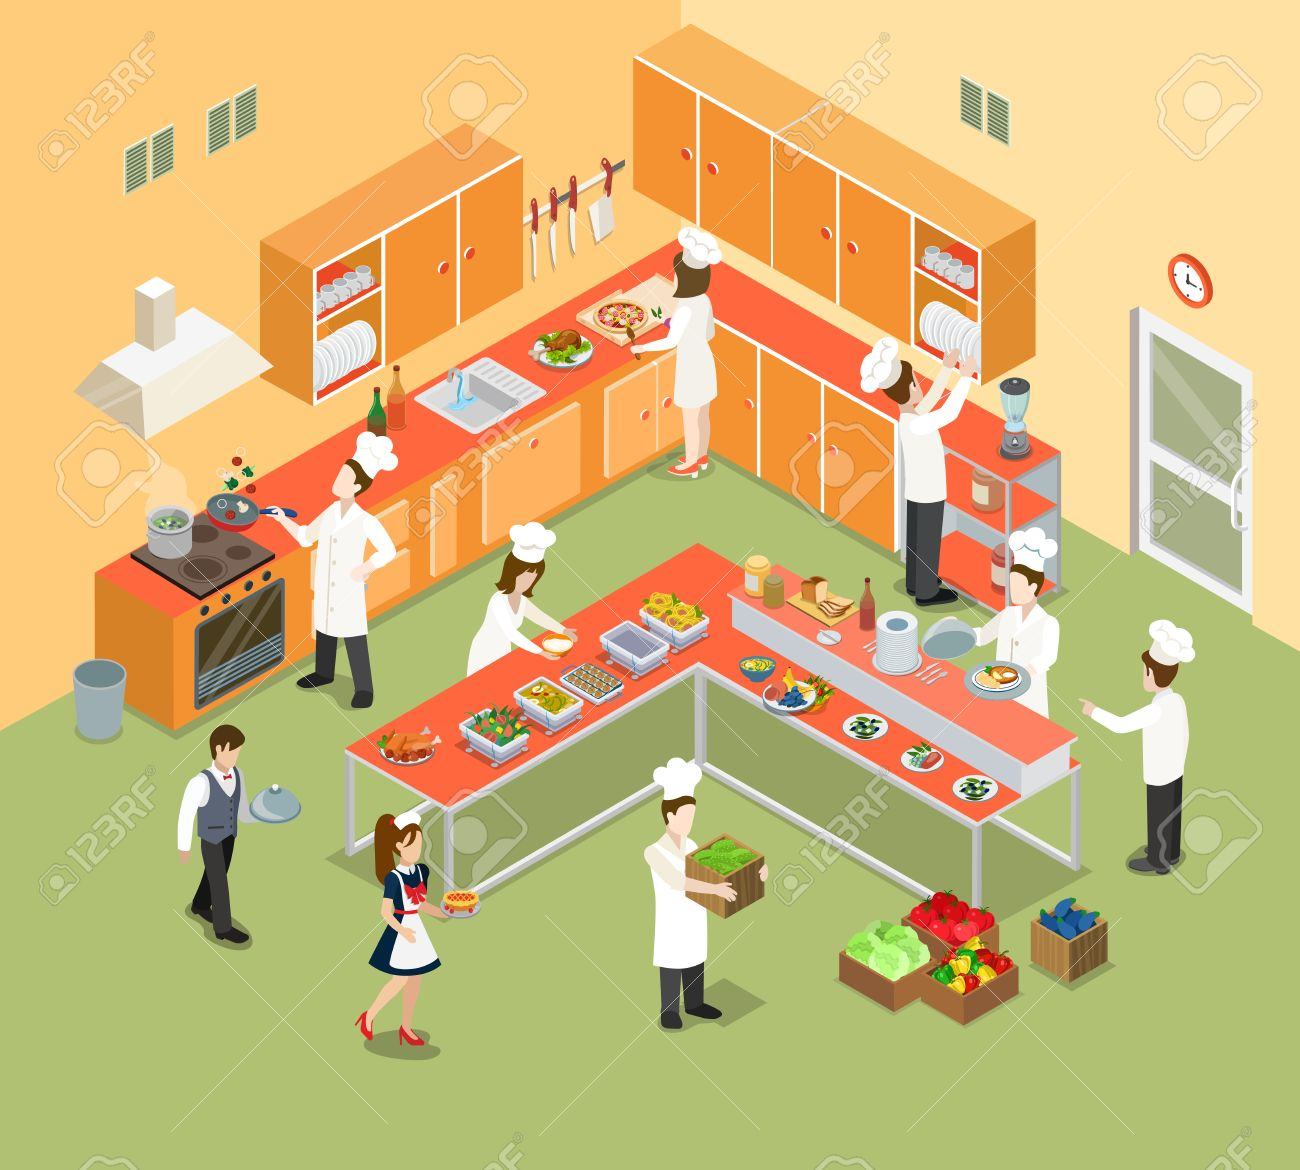 Restaurant Kitchen Illustration flat isometric restaurant kitchen interior with chief, cook and